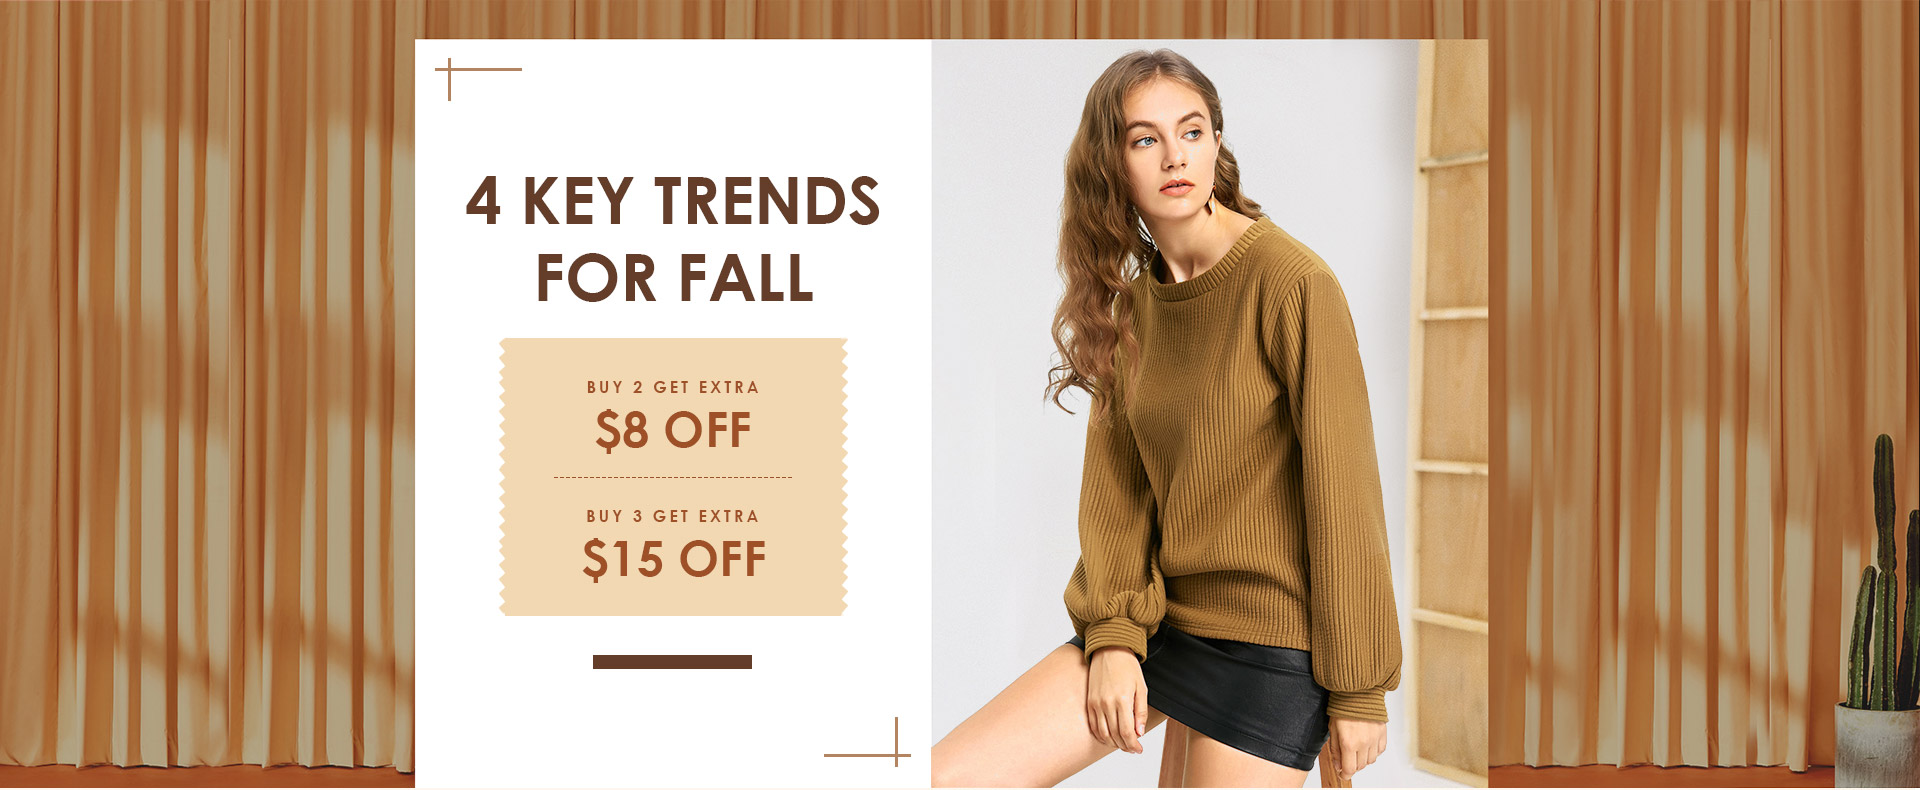 https://www.zaful.com/four-trends-for-fall.html?lkid=11611305